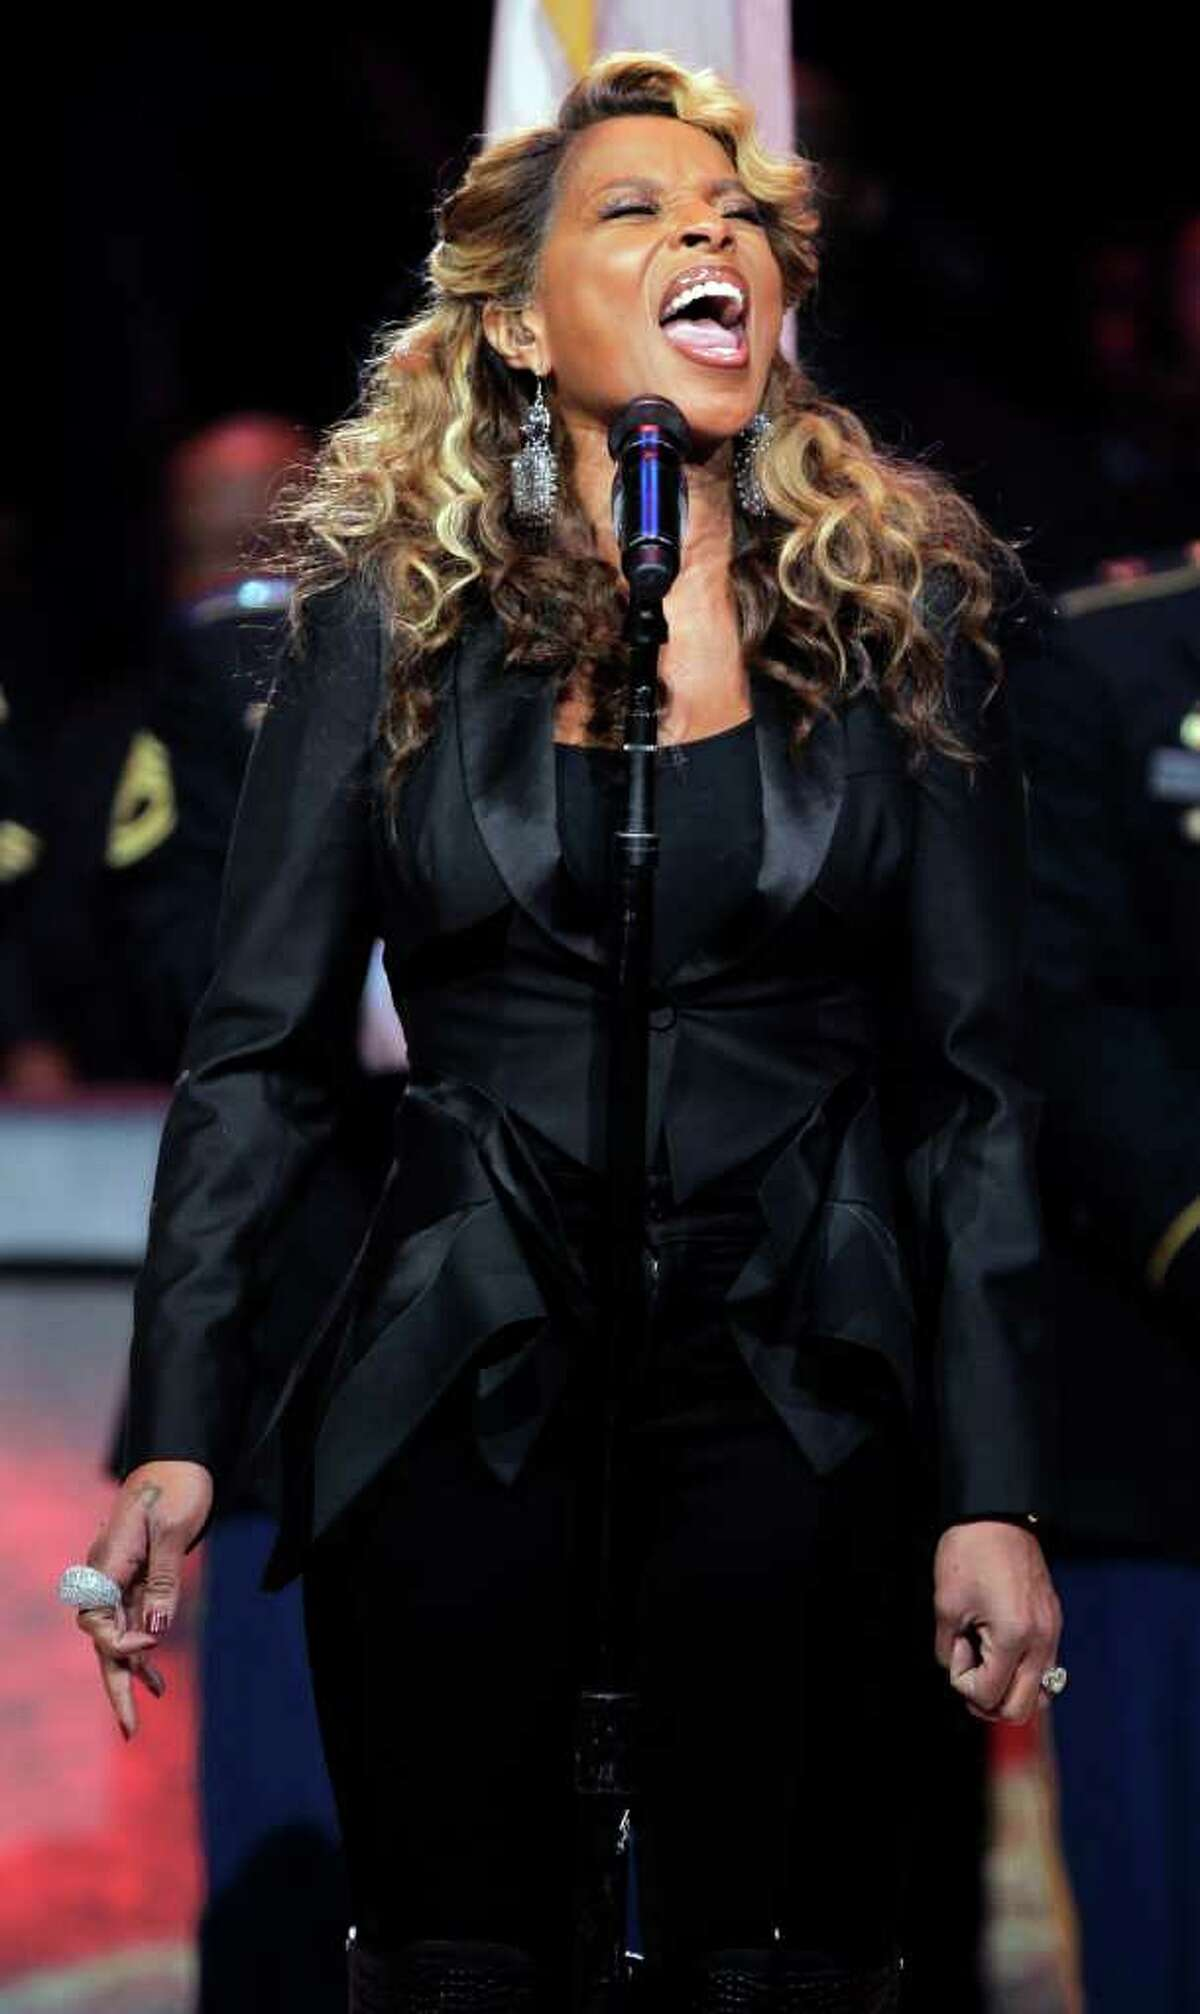 Singer Mary J. Blige performs the national anthem before the NBA All-Star basketball game, Sunday, Feb. 26, 2012, in Orlando, Fla.